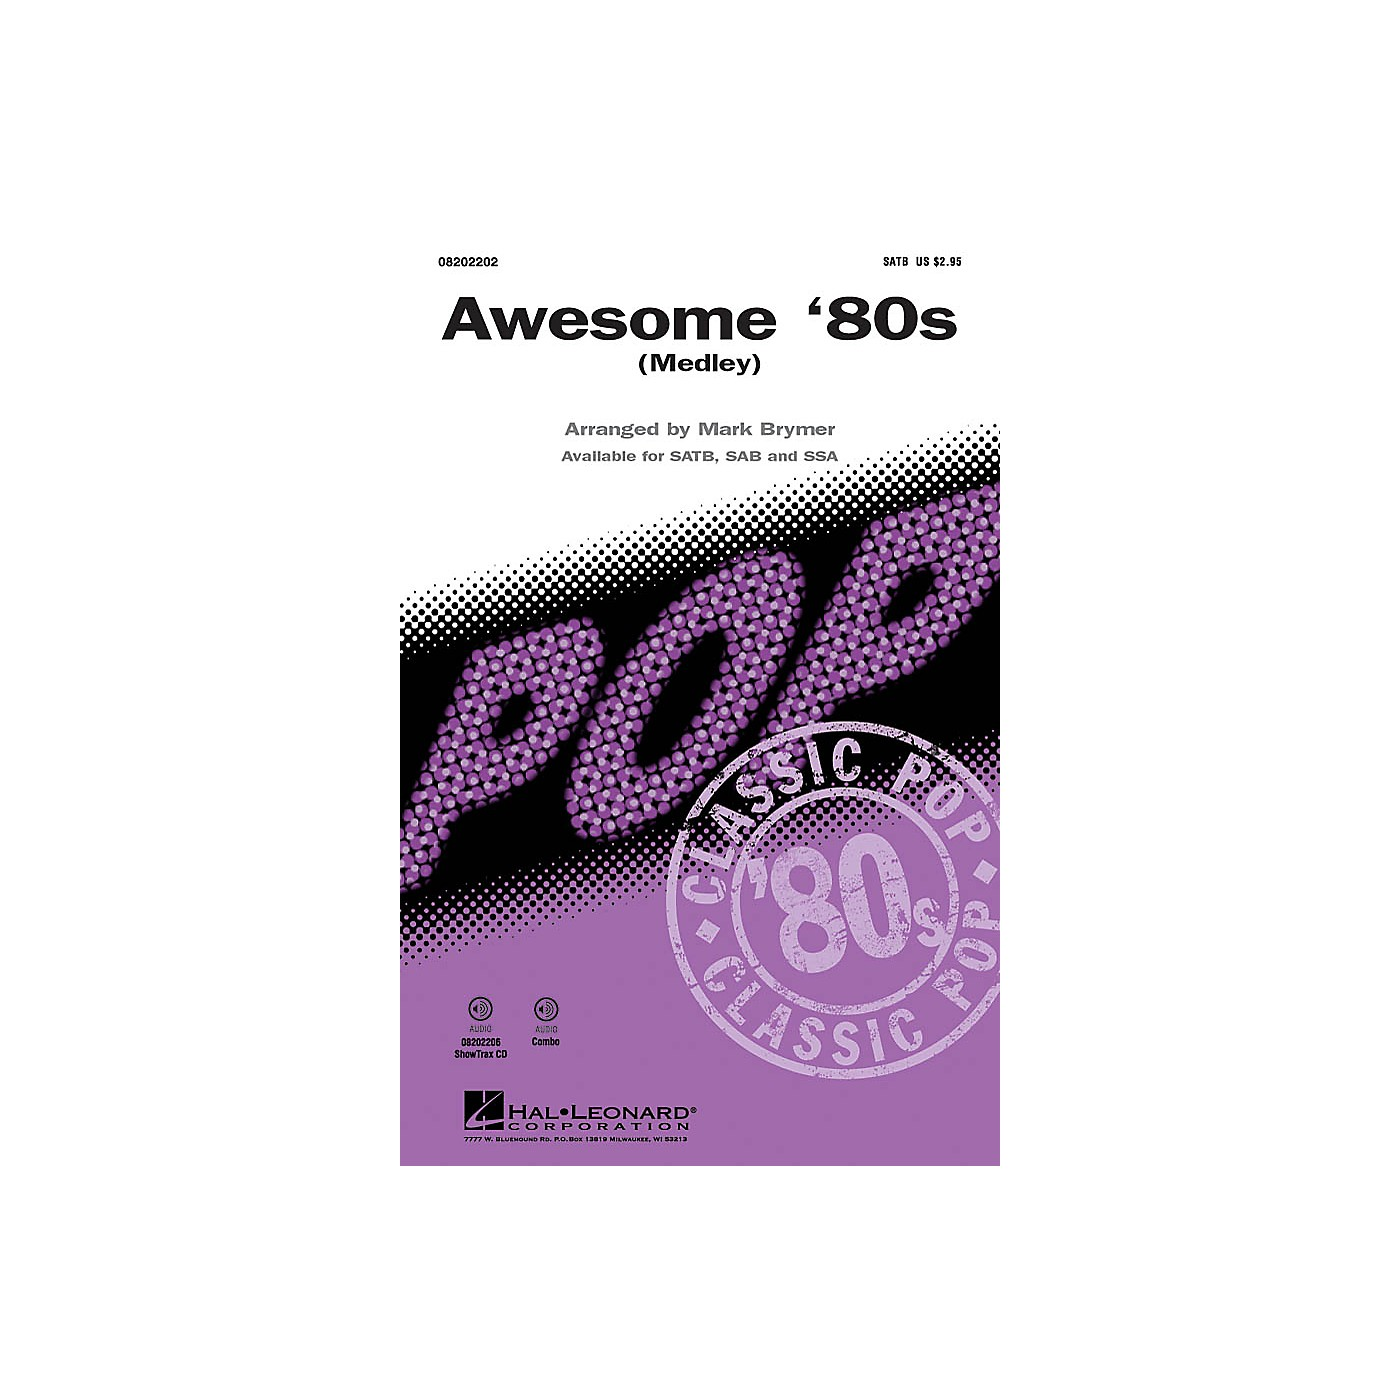 Hal Leonard Awesome '80s (Medley) ShowTrax CD Arranged by Mark Brymer thumbnail